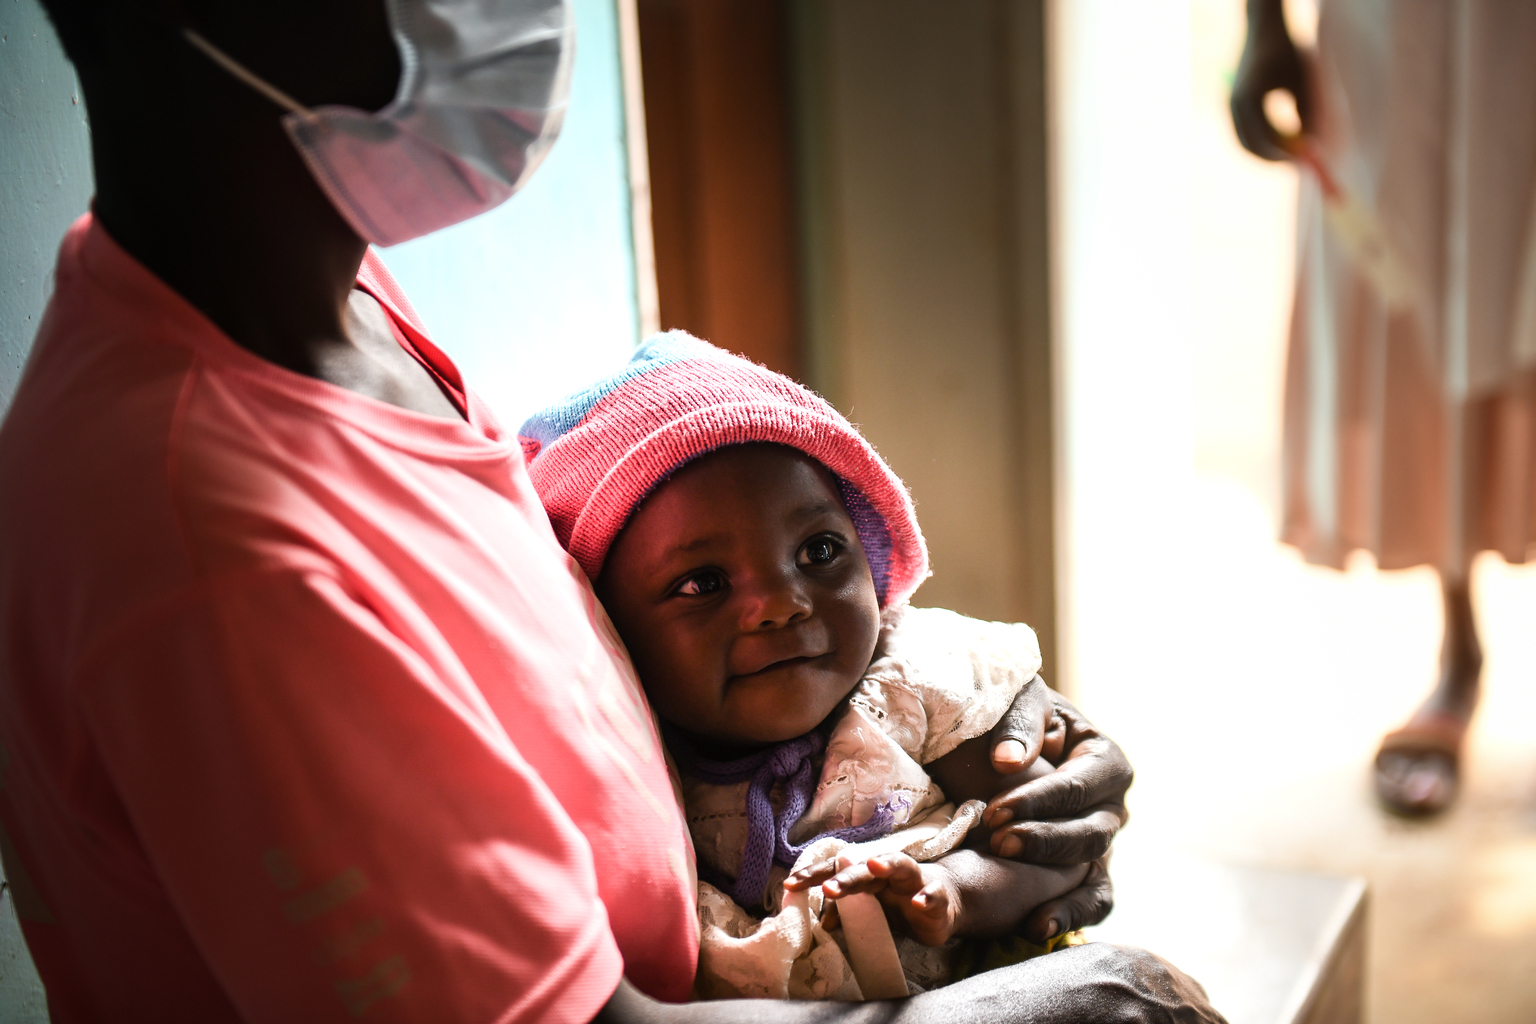 An infant wearing a hat smiling in the arms of their mother as they wait to receive a vitamin A dose at Chisitu Health Centre in Mulanje southern Malawi.